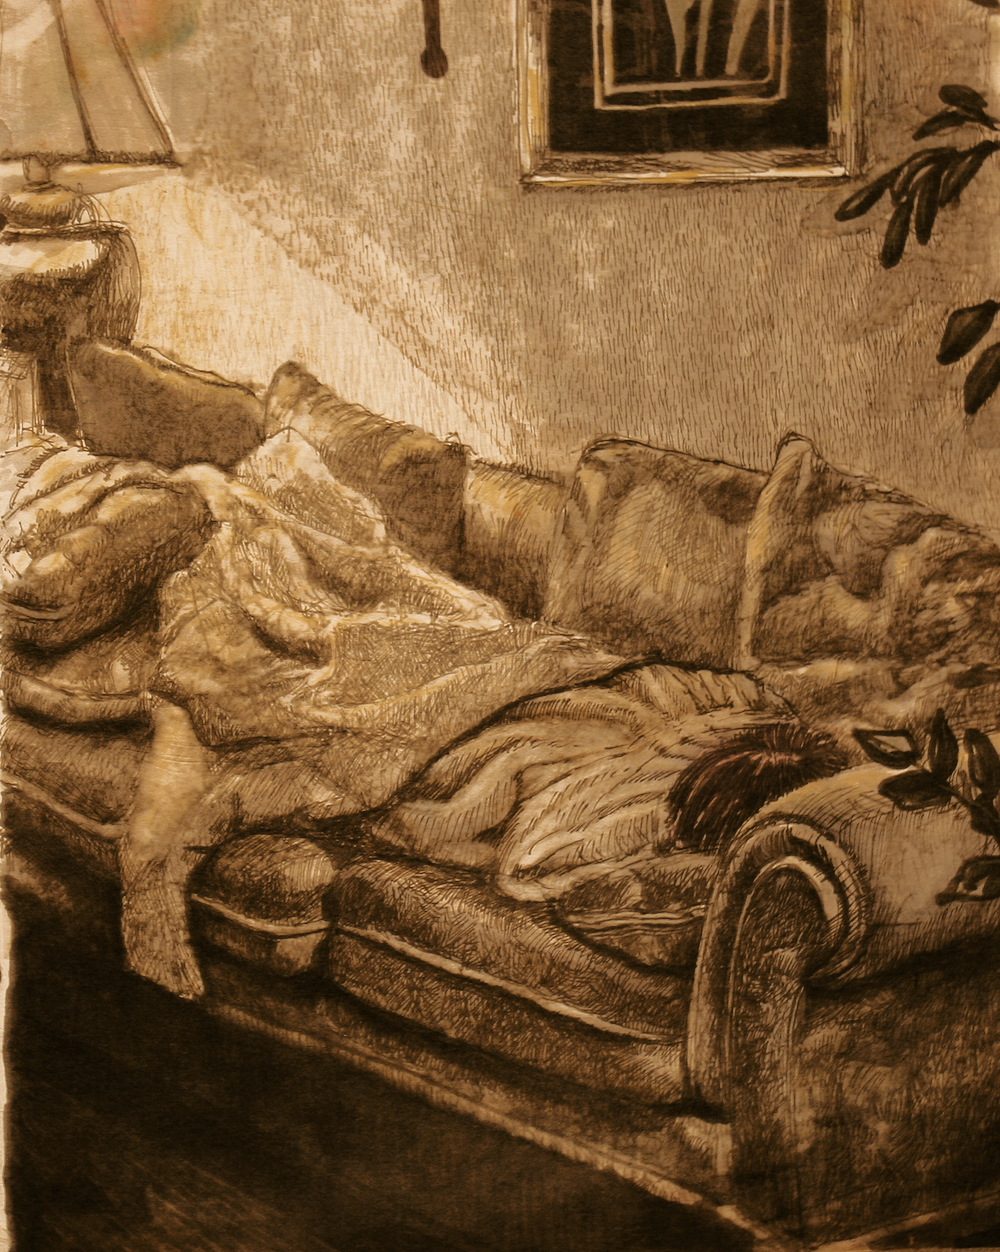 Michelle two ells having a nap.-original drawing using permanent marker and ink by freelance cork artist, web site designer and developer